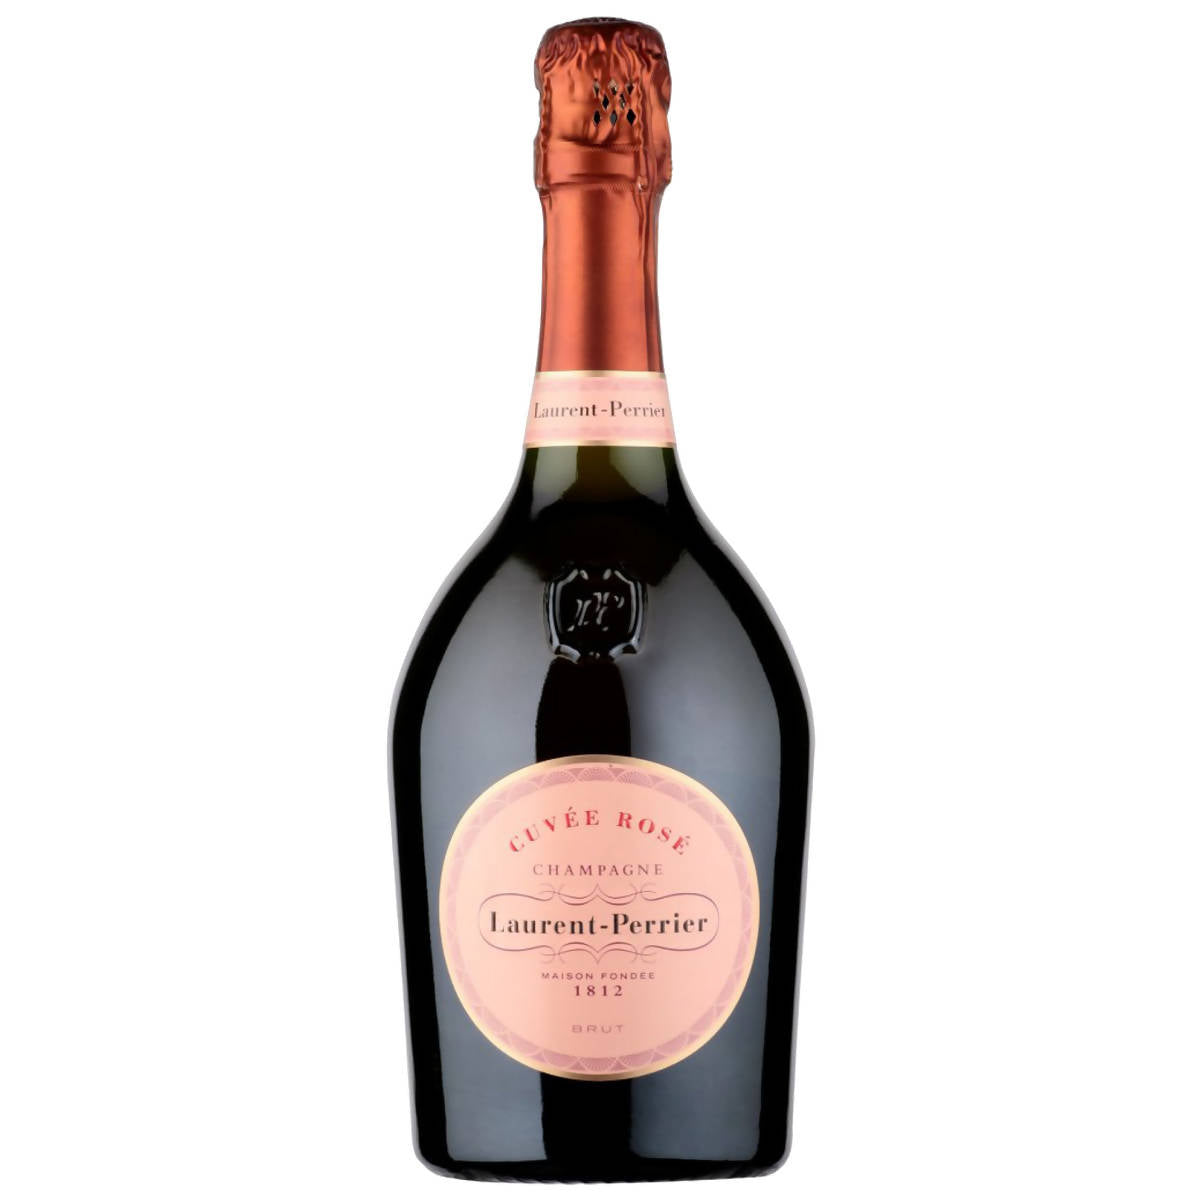 LAURENT-PERRIER ROSE BRUT CHAMPAGNE 75 CL